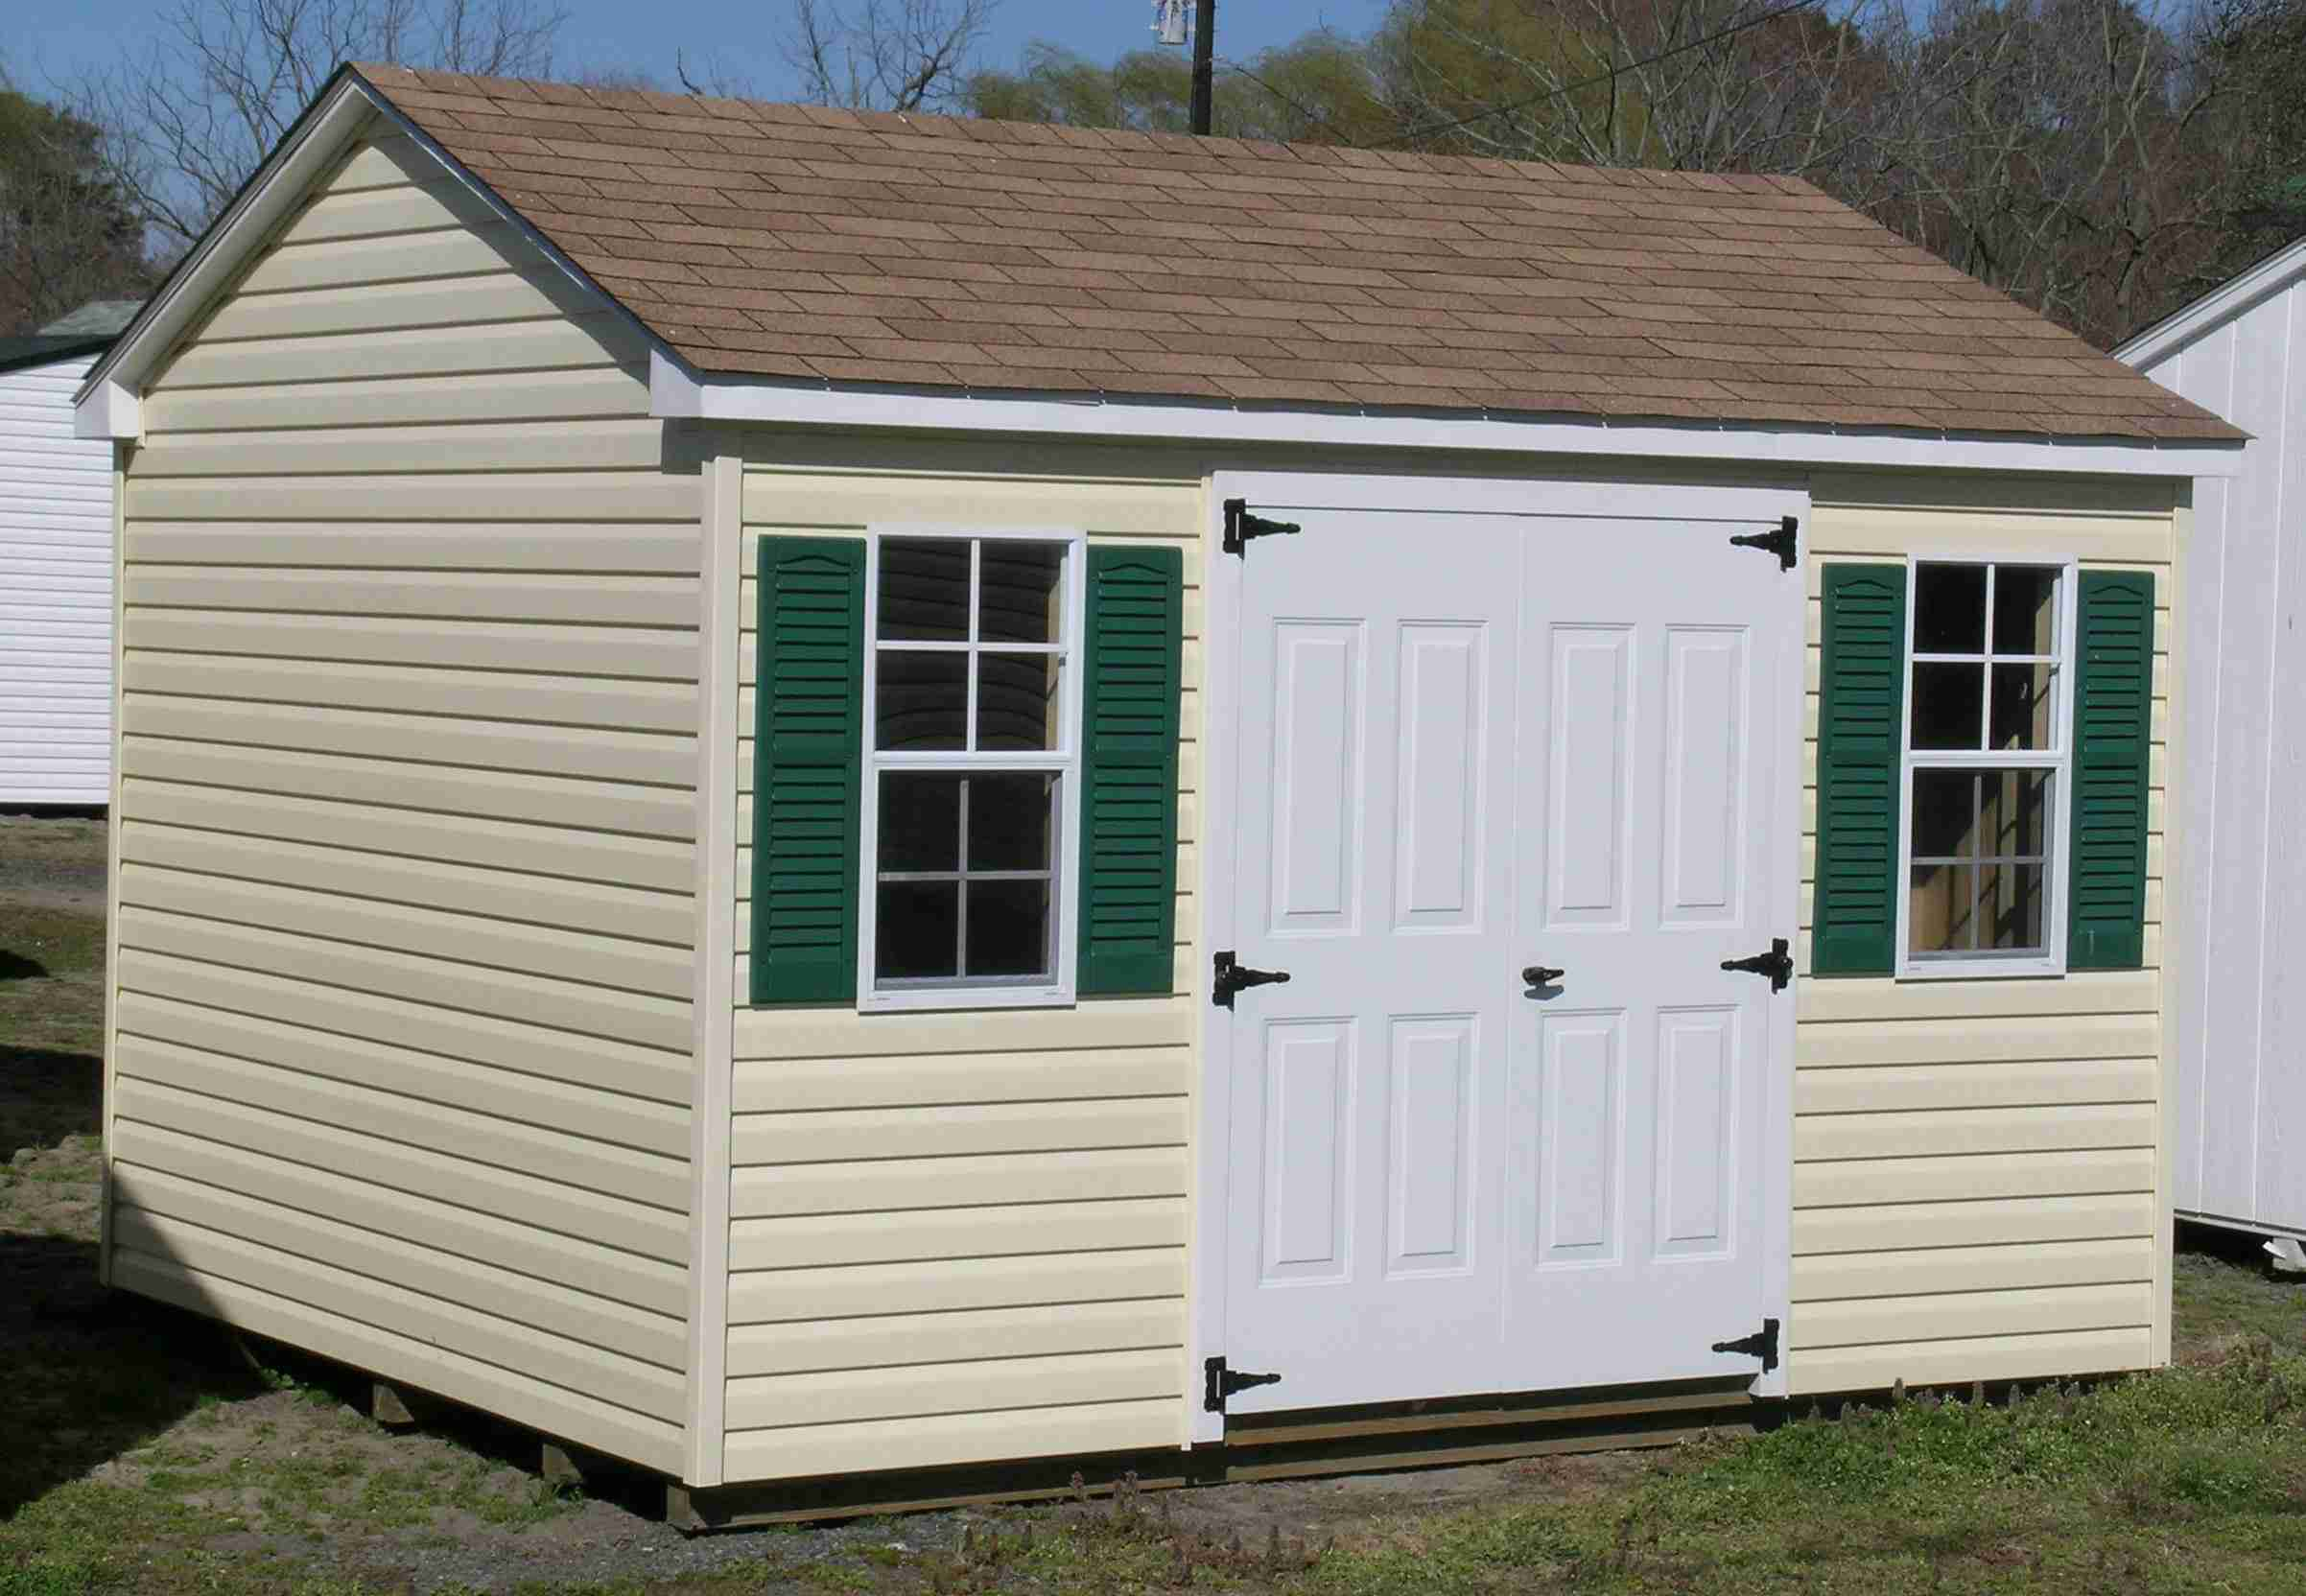 nj 7326343289 garden and image garden sheds vinyl